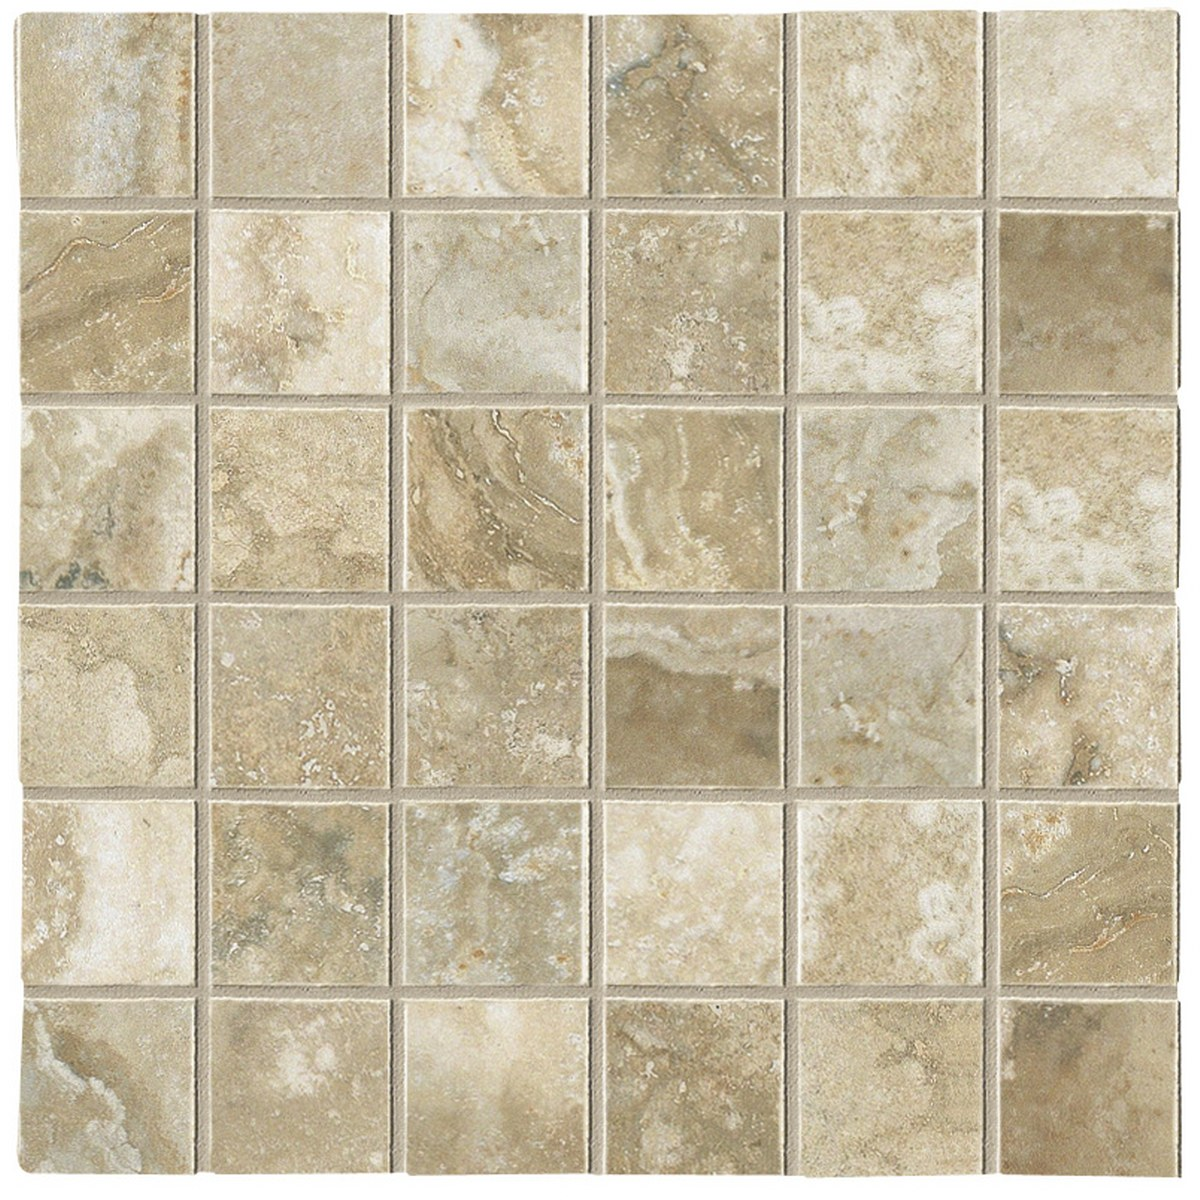 Alabastro beige mosaic ceramic tile supplies for Carrelage salle de bain beige texture